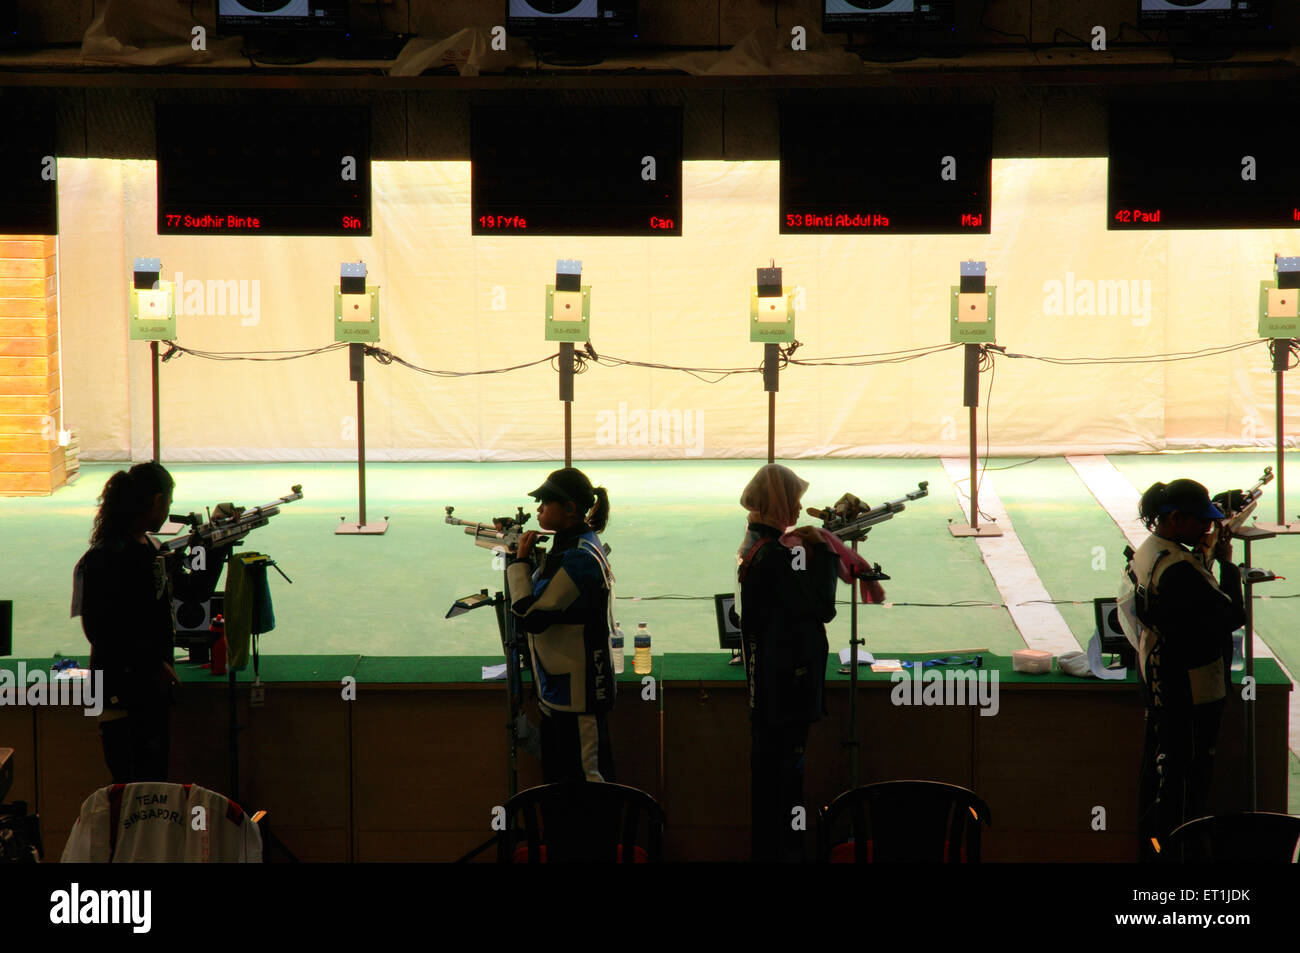 Shooting arena at balewadi stadium with contest of women shooters third commonwealth youth games ; Pune - Stock Image